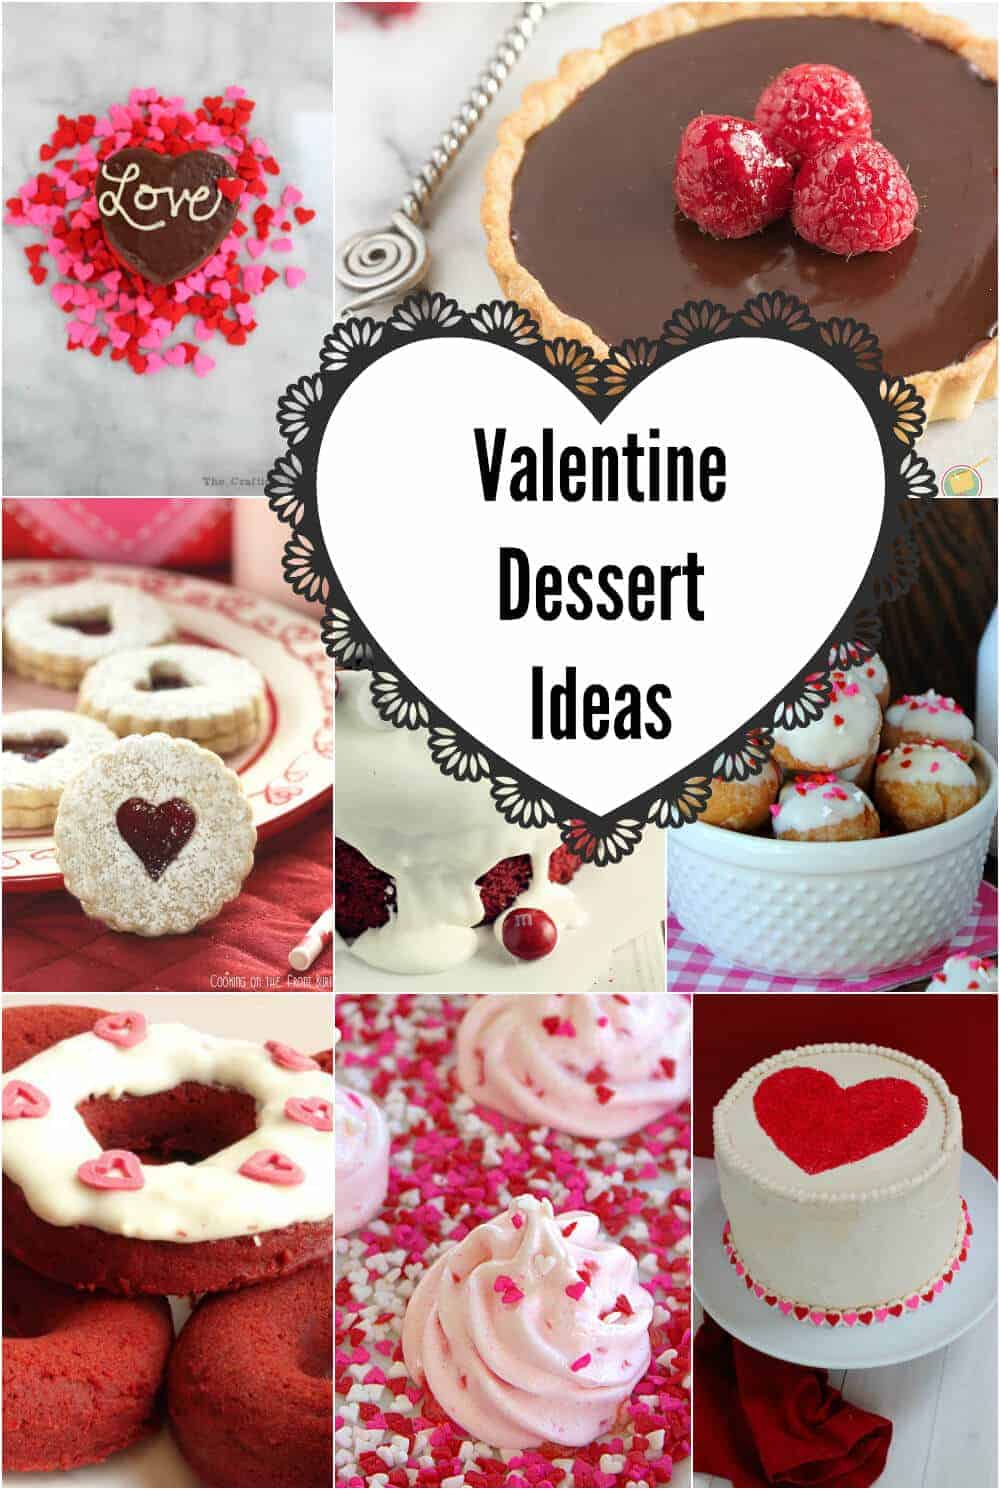 Delicious valentine dessert ideas page 2 of 2 princess pinky girl - Desserts valentines day ...